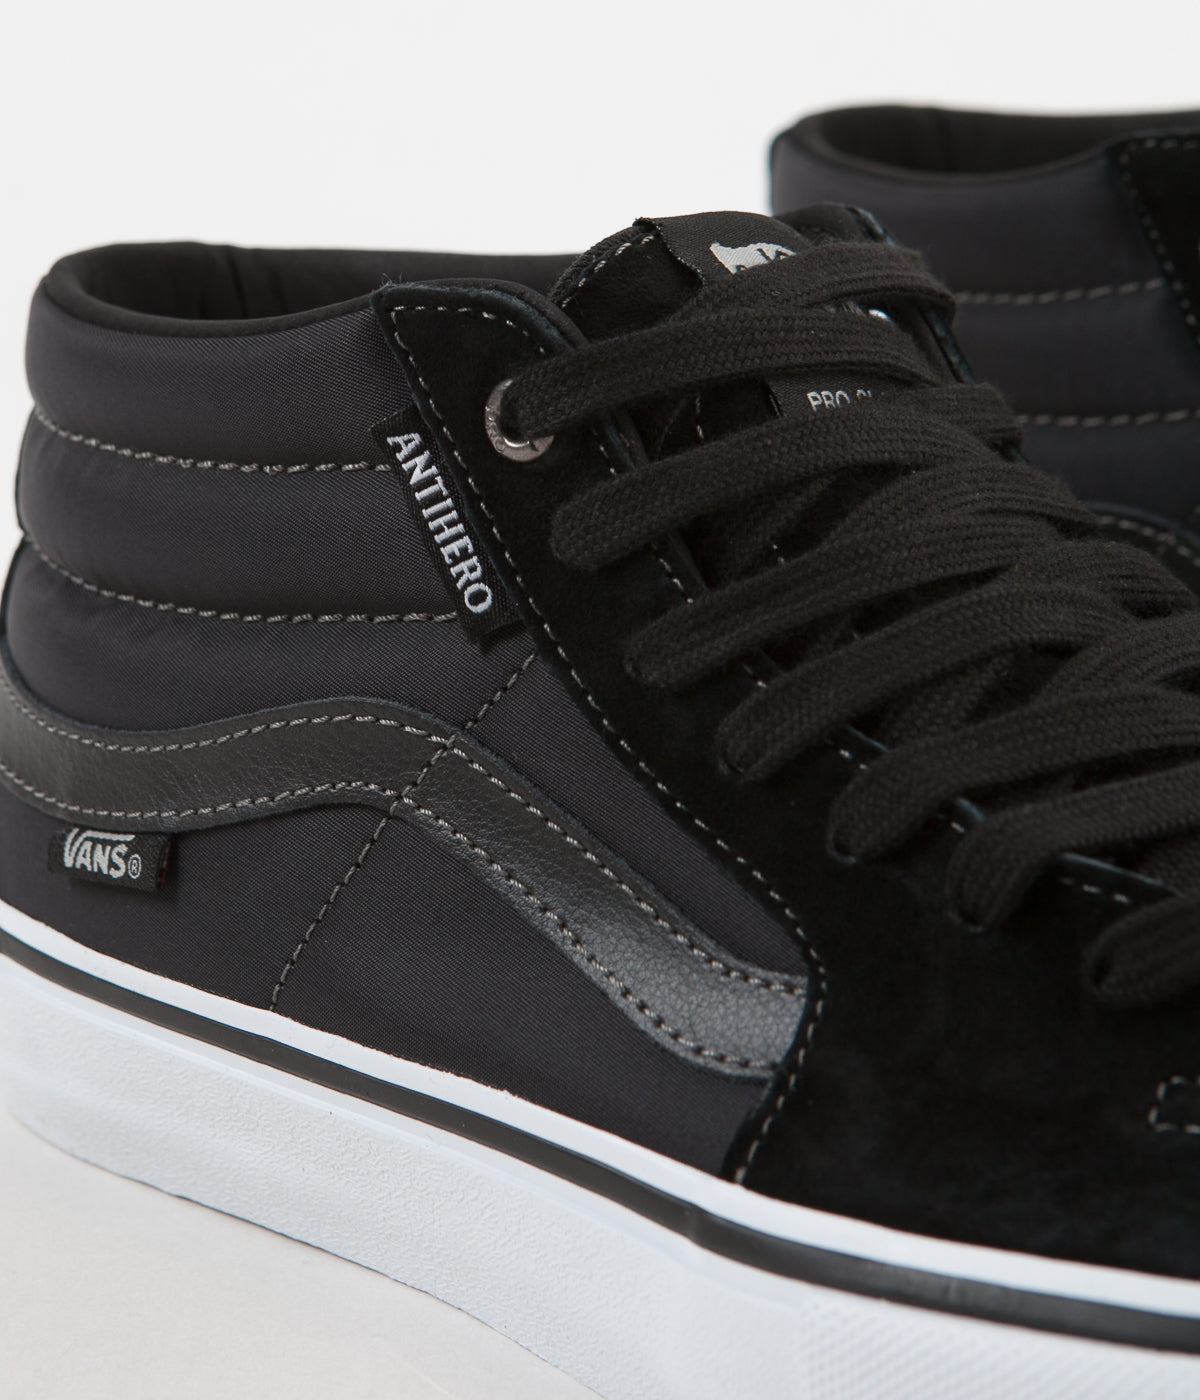 90be7a6c6a ... Vans x Anti Hero Sk8-Mid Pro Shoes - Grosso   Black ...